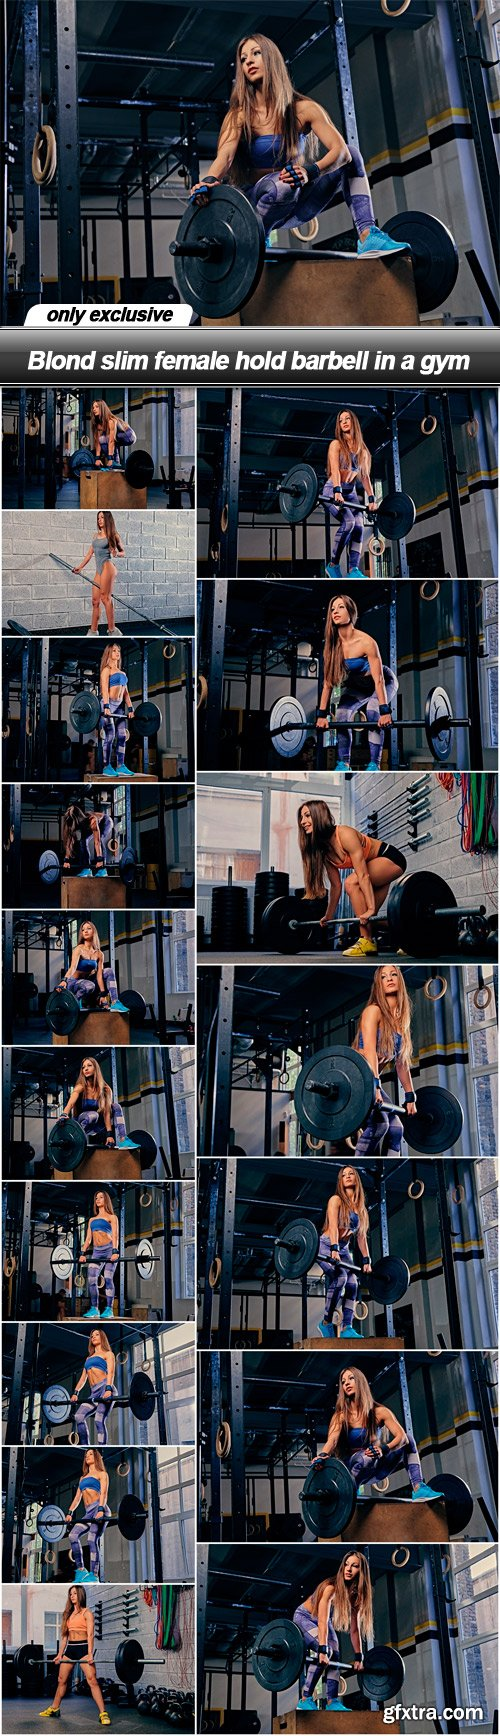 Blond slim female hold barbell in a gym - 17 UHQ JPEG